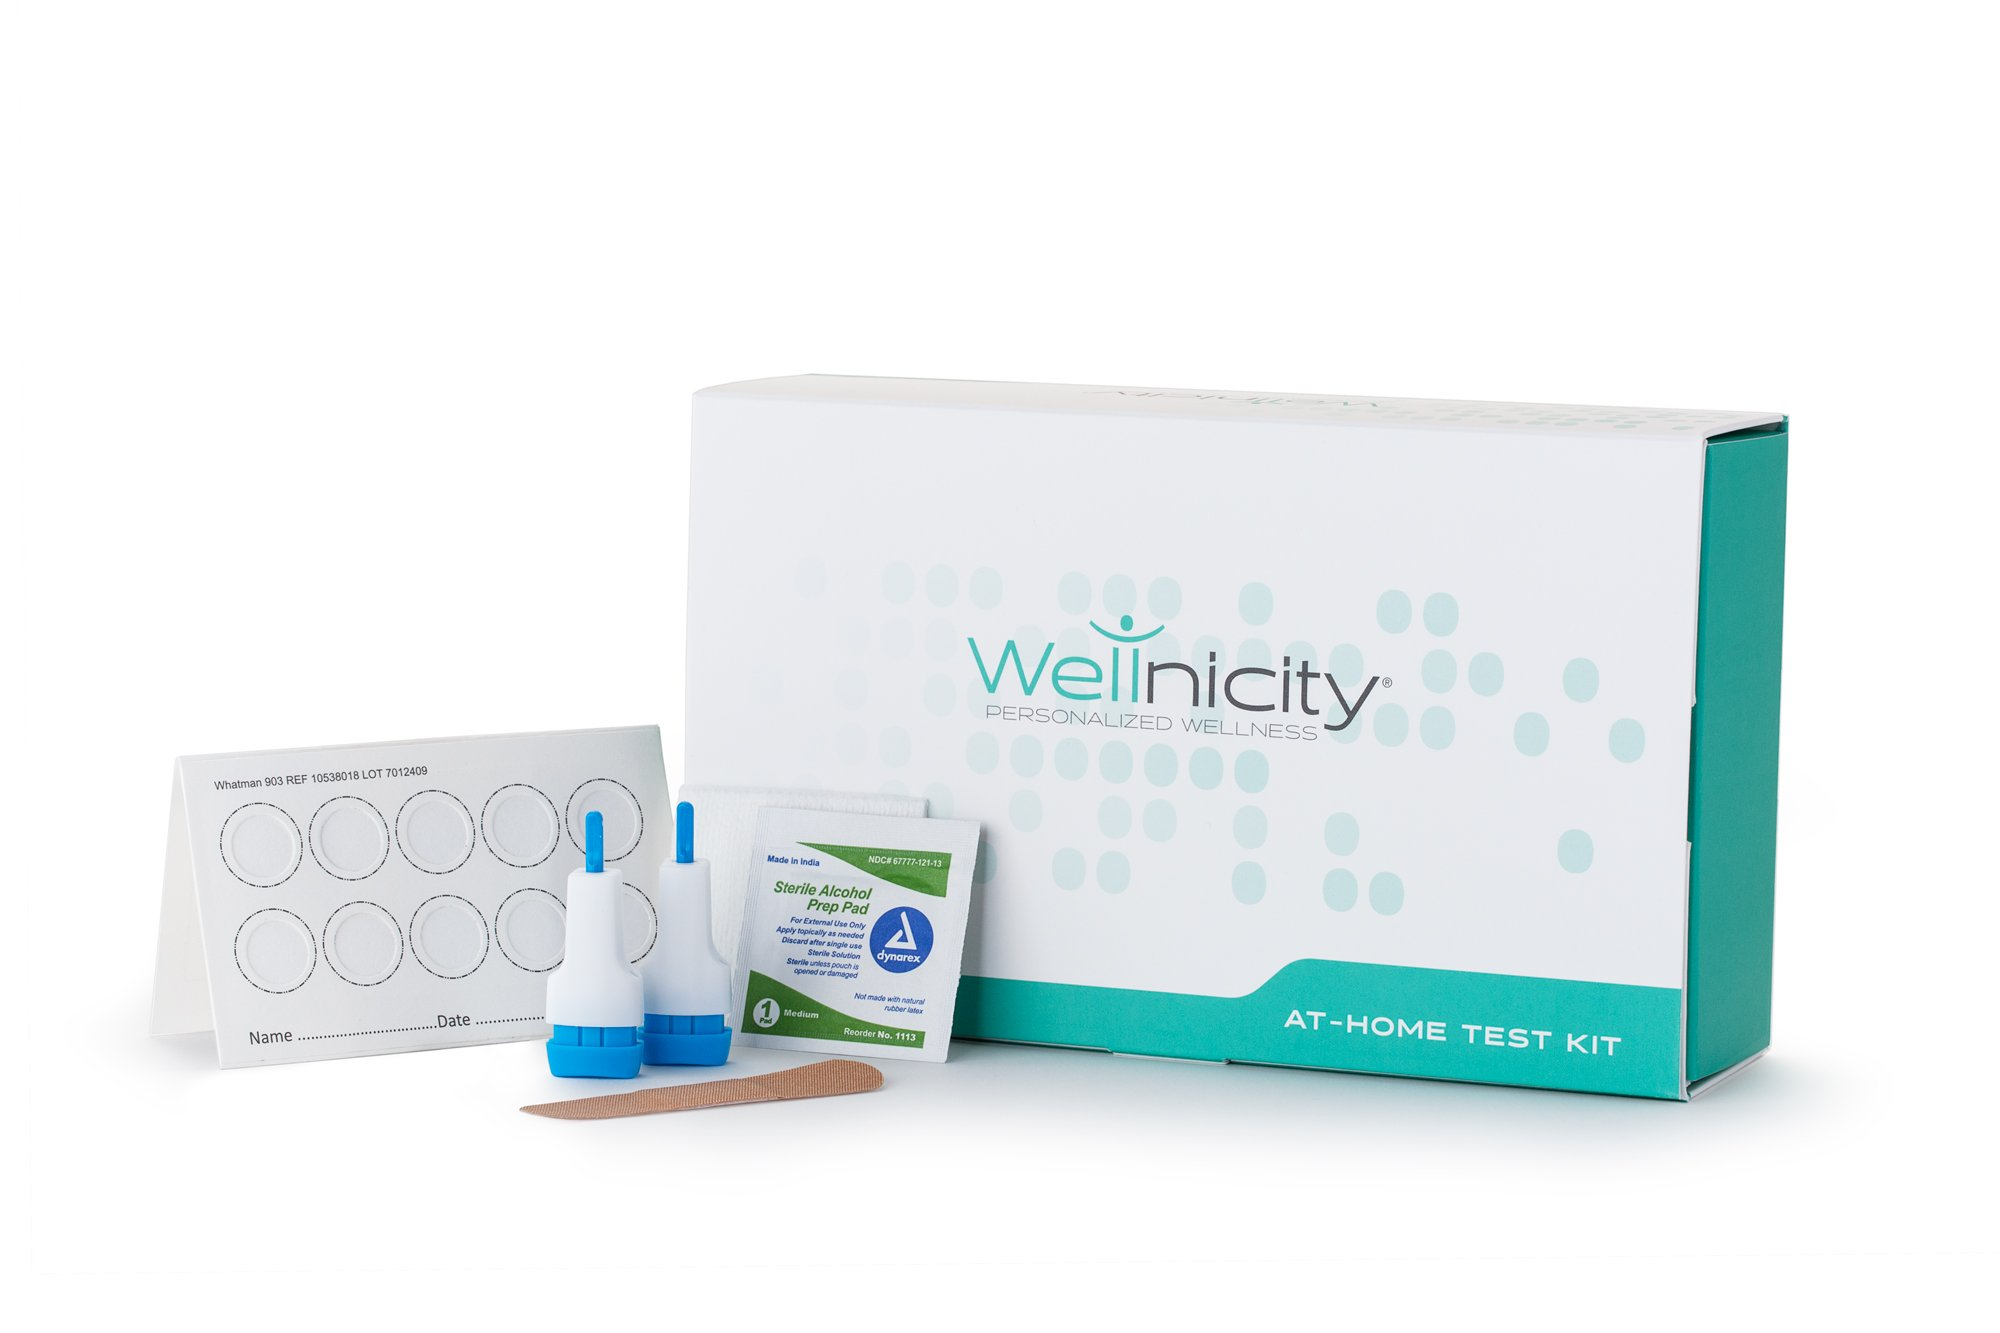 Wellnicity - At-Home Thyroid Test - Measures 3 thyroid hormones that may be contributing to fatigue, weight gain, muscle/joint pain or thinning hair (Not available in NY, NJ, MD or RI)